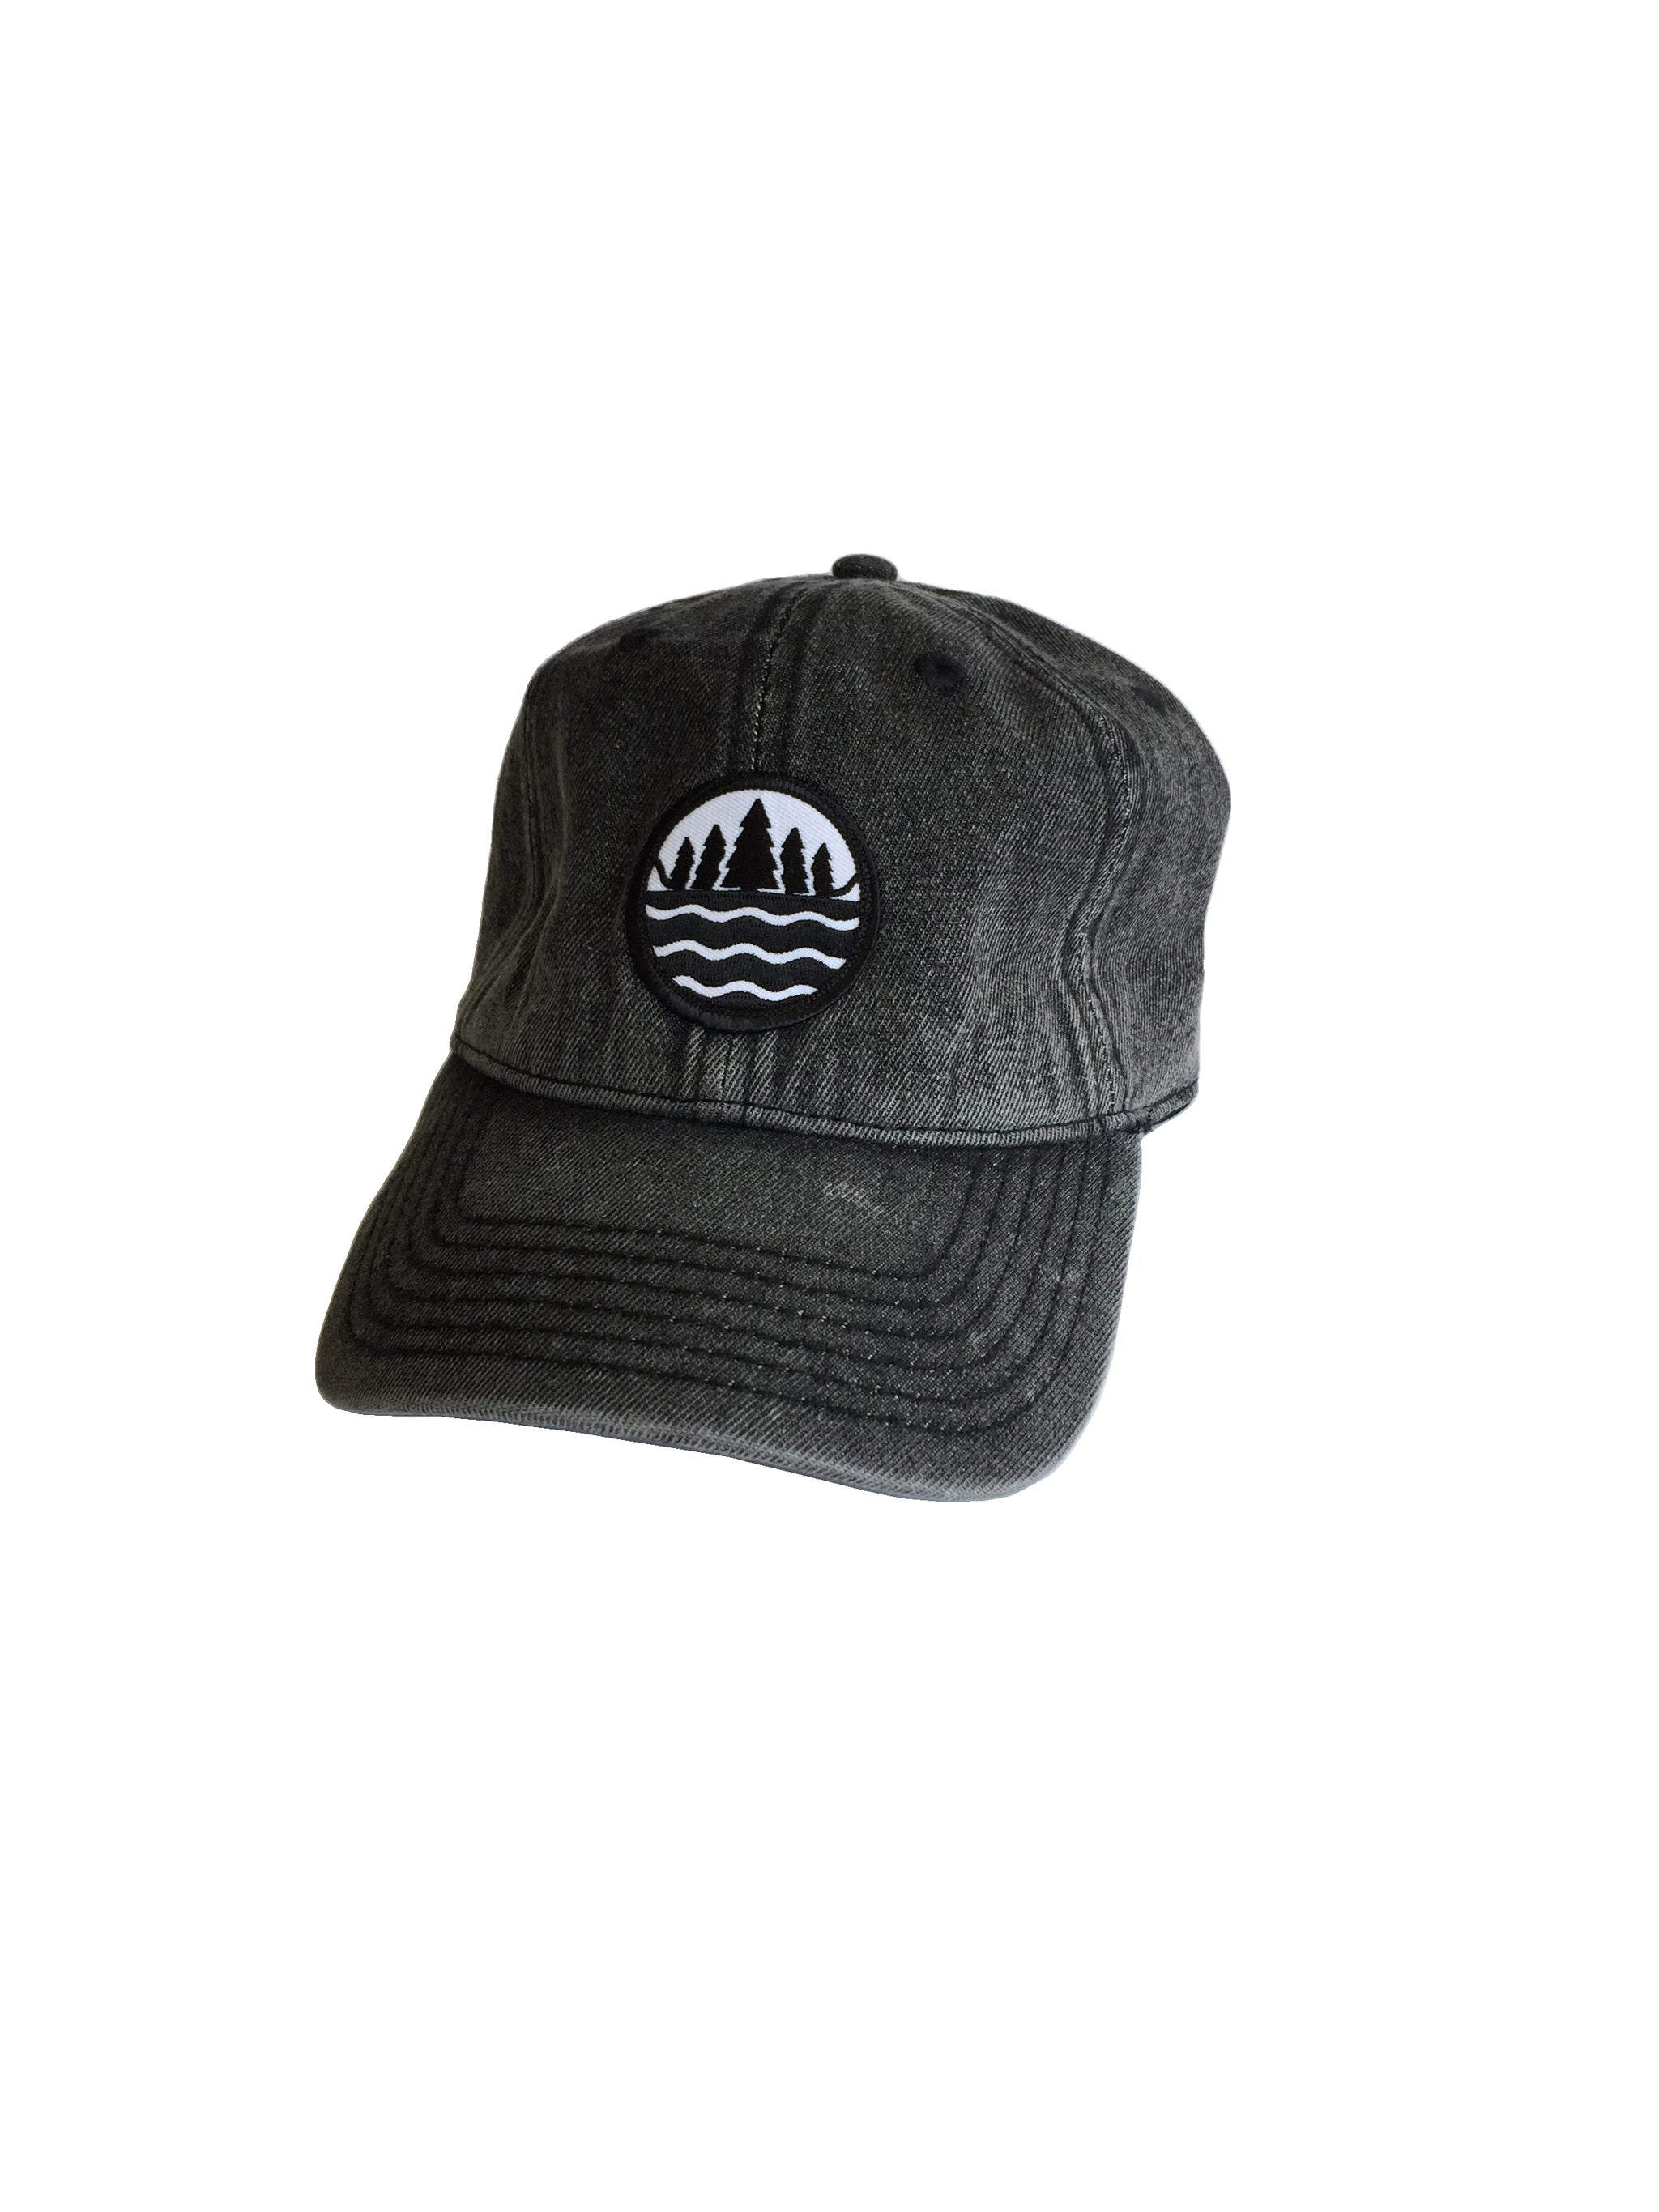 ea07d3ce Great Lakes Hats | I LOVE MICHIGAN SHOP - The Great Lakes State